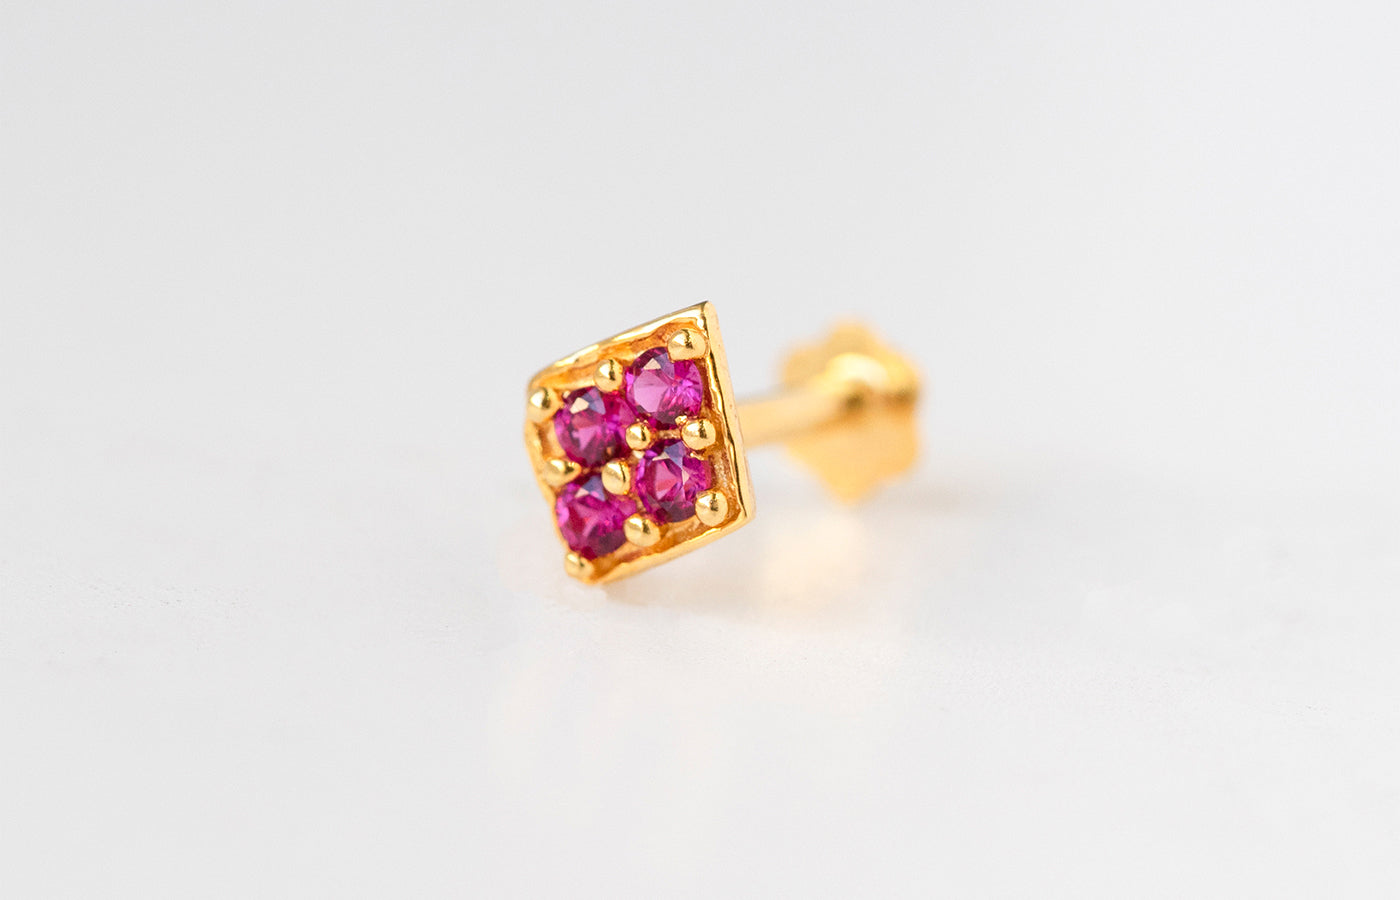 18ct Yellow Gold Screw Back Nose Stud set with four pink Cubic Zirconias NIP-5-570a